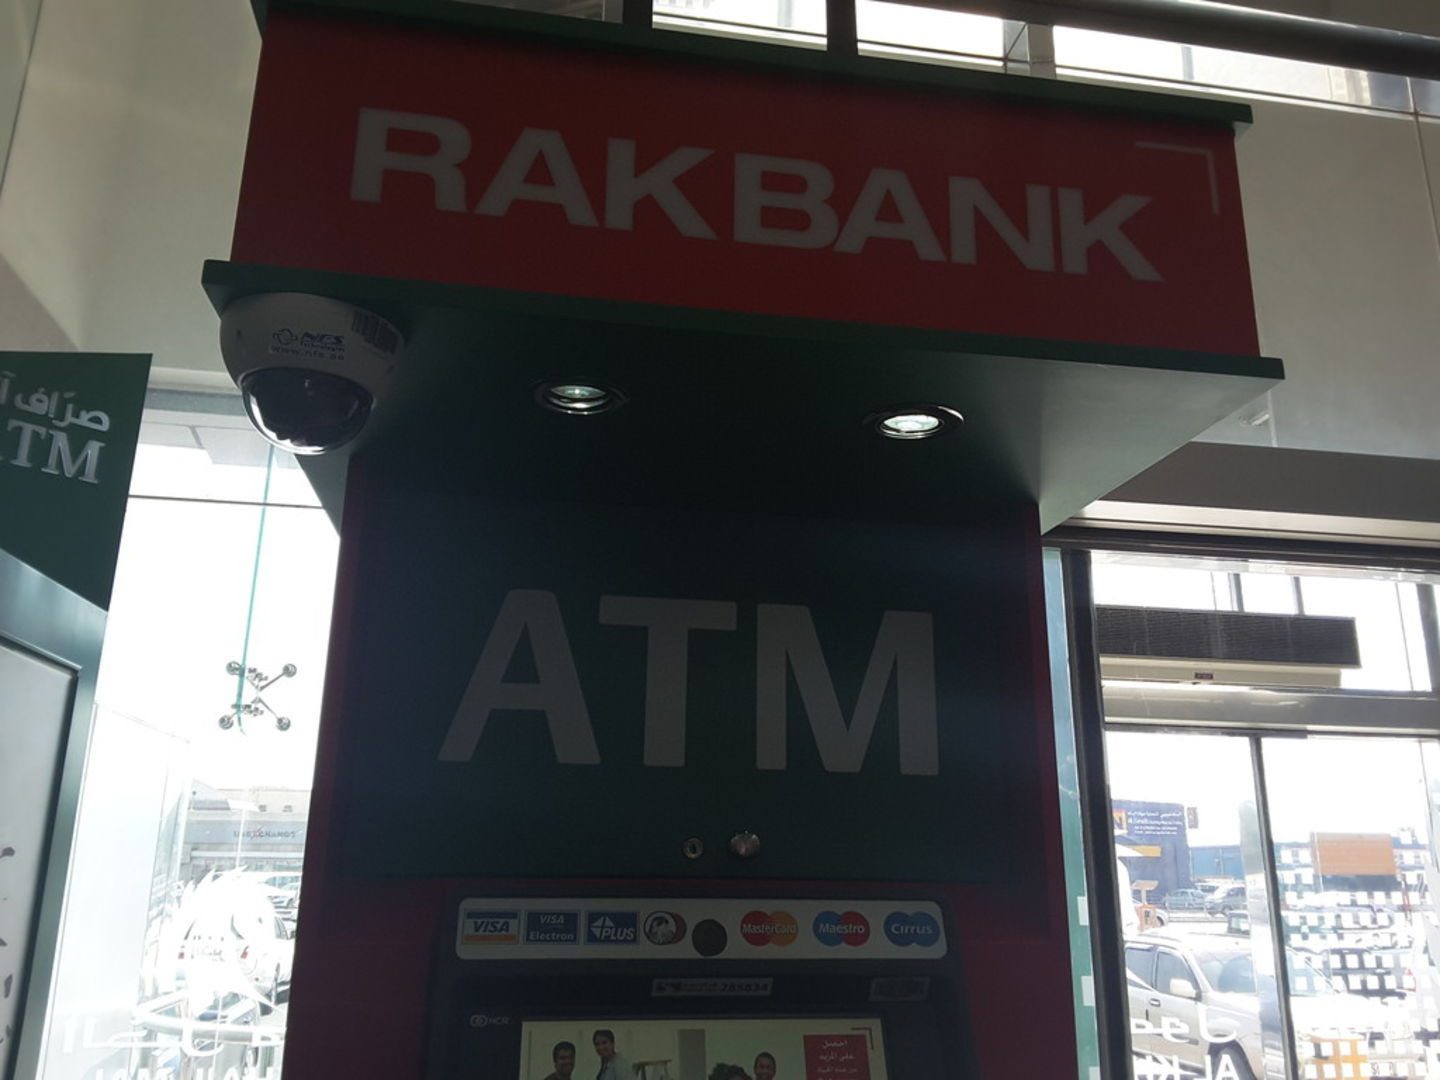 HiDubai-business-rakbank-atm-finance-legal-banks-atms-al-quoz-4-dubai-2